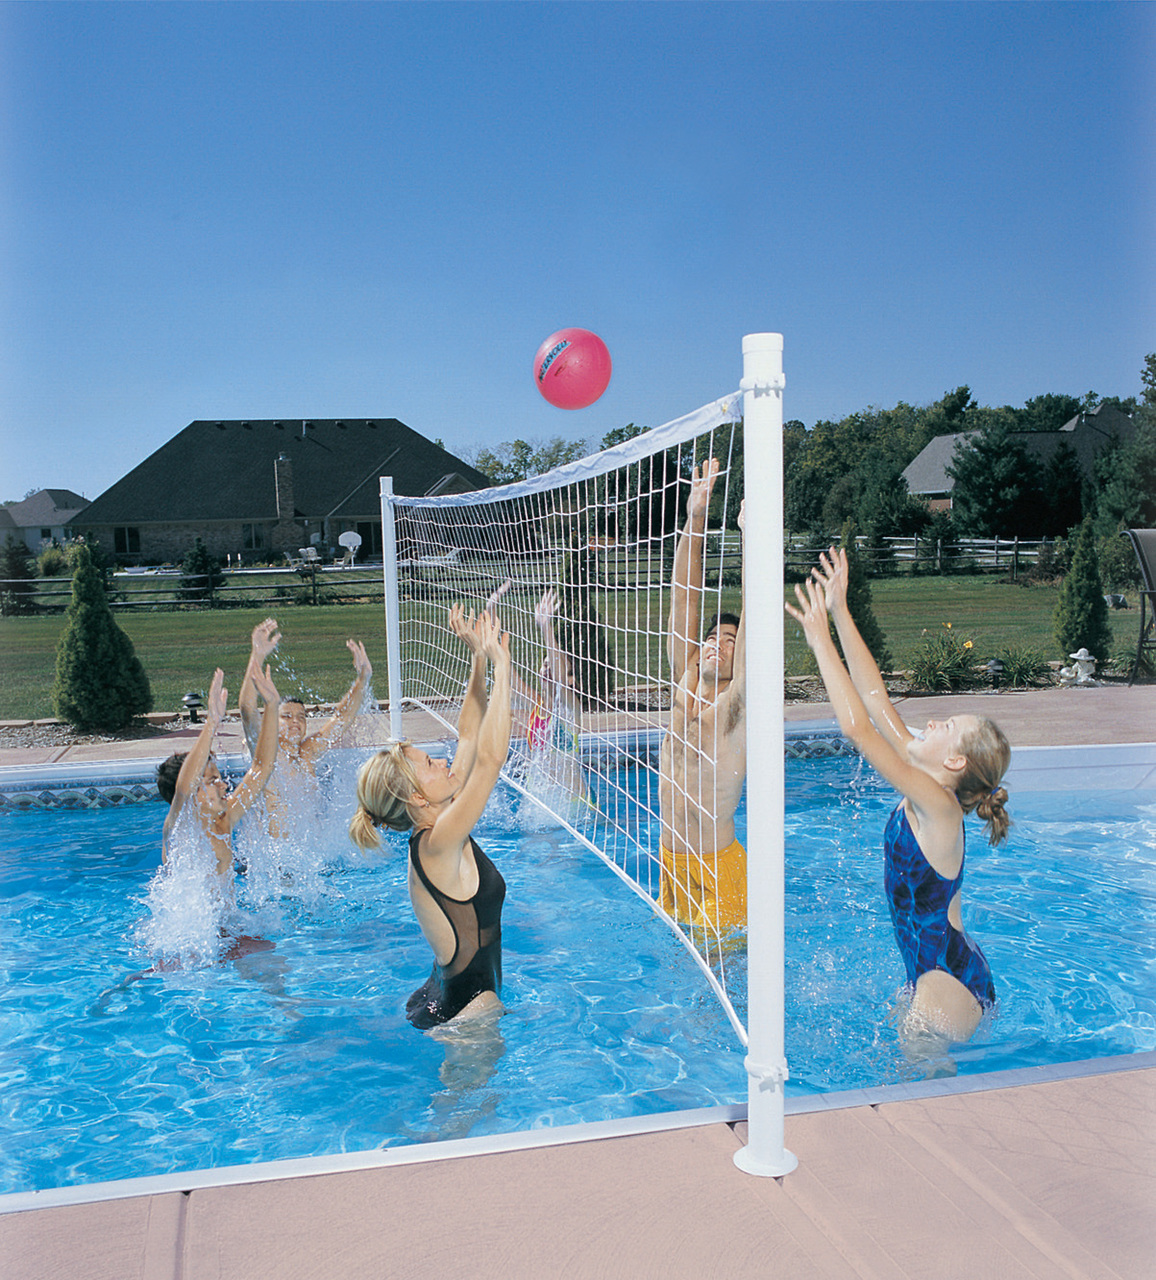 Pool Volleyball - Pool Games for Kids